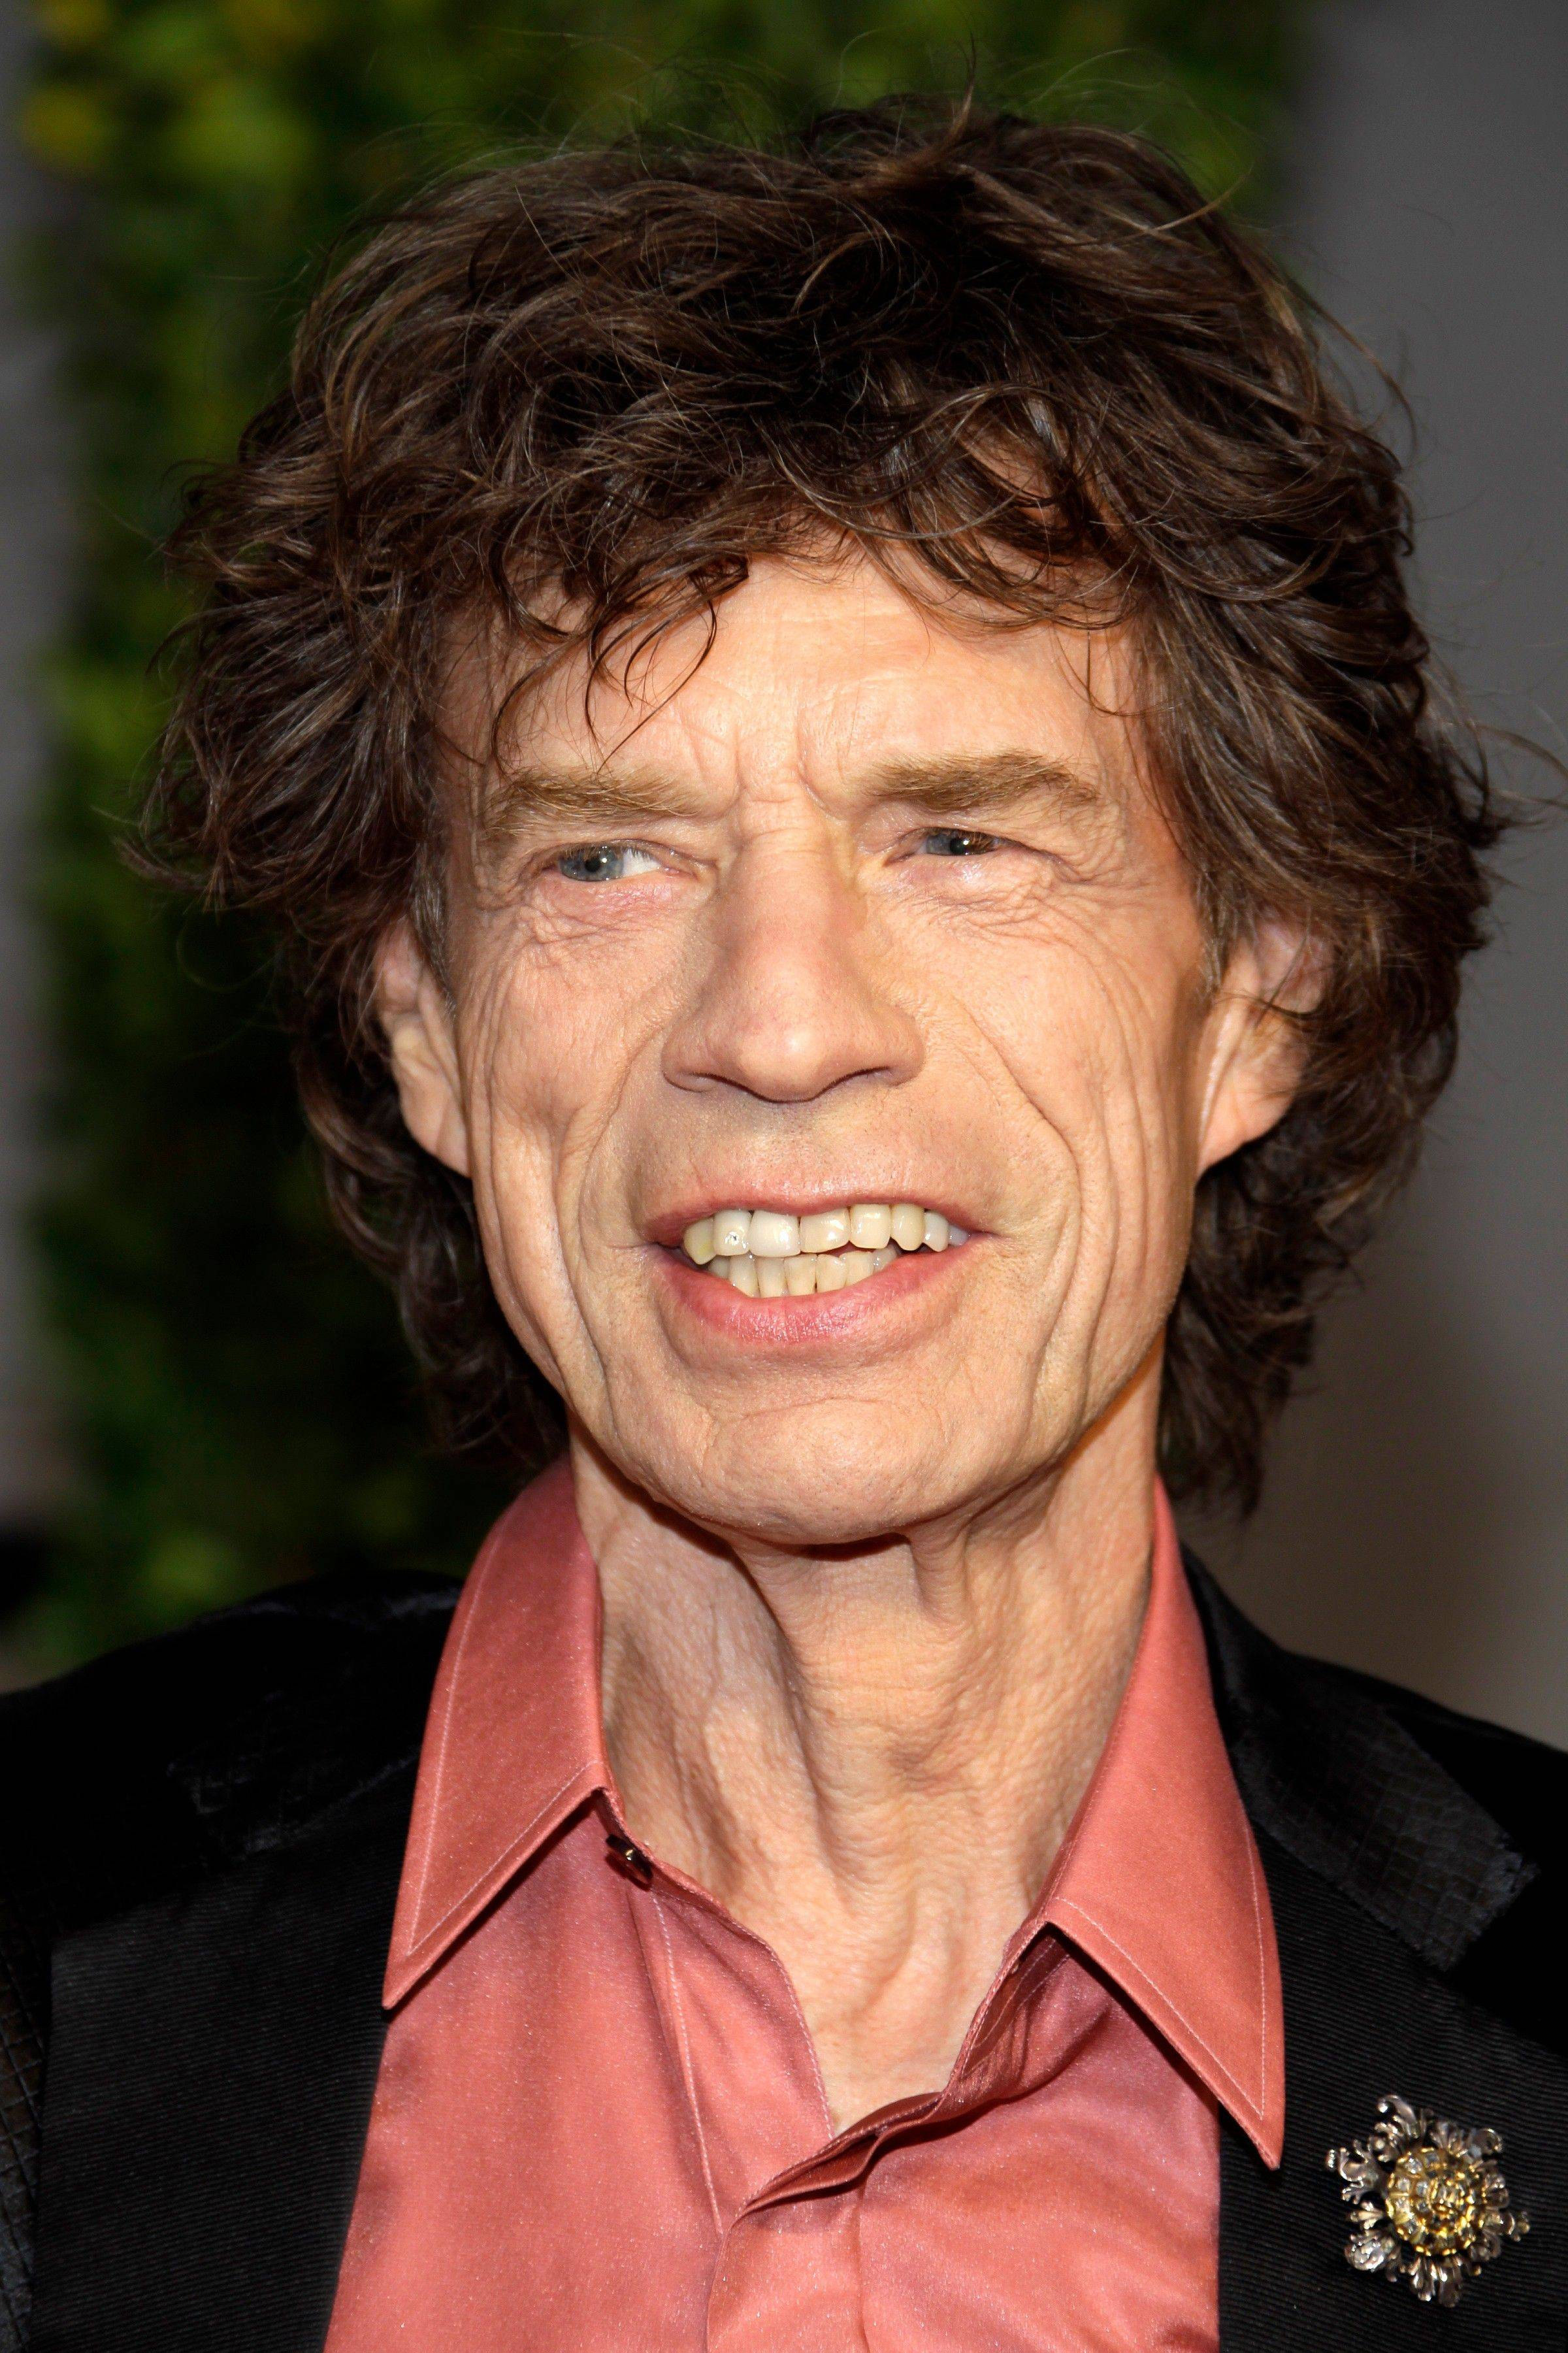 Mick Jagger of the Rolling Stones in an interview Monday said he is not sure if the Rolling Stones will tour for their 50th anniversary.